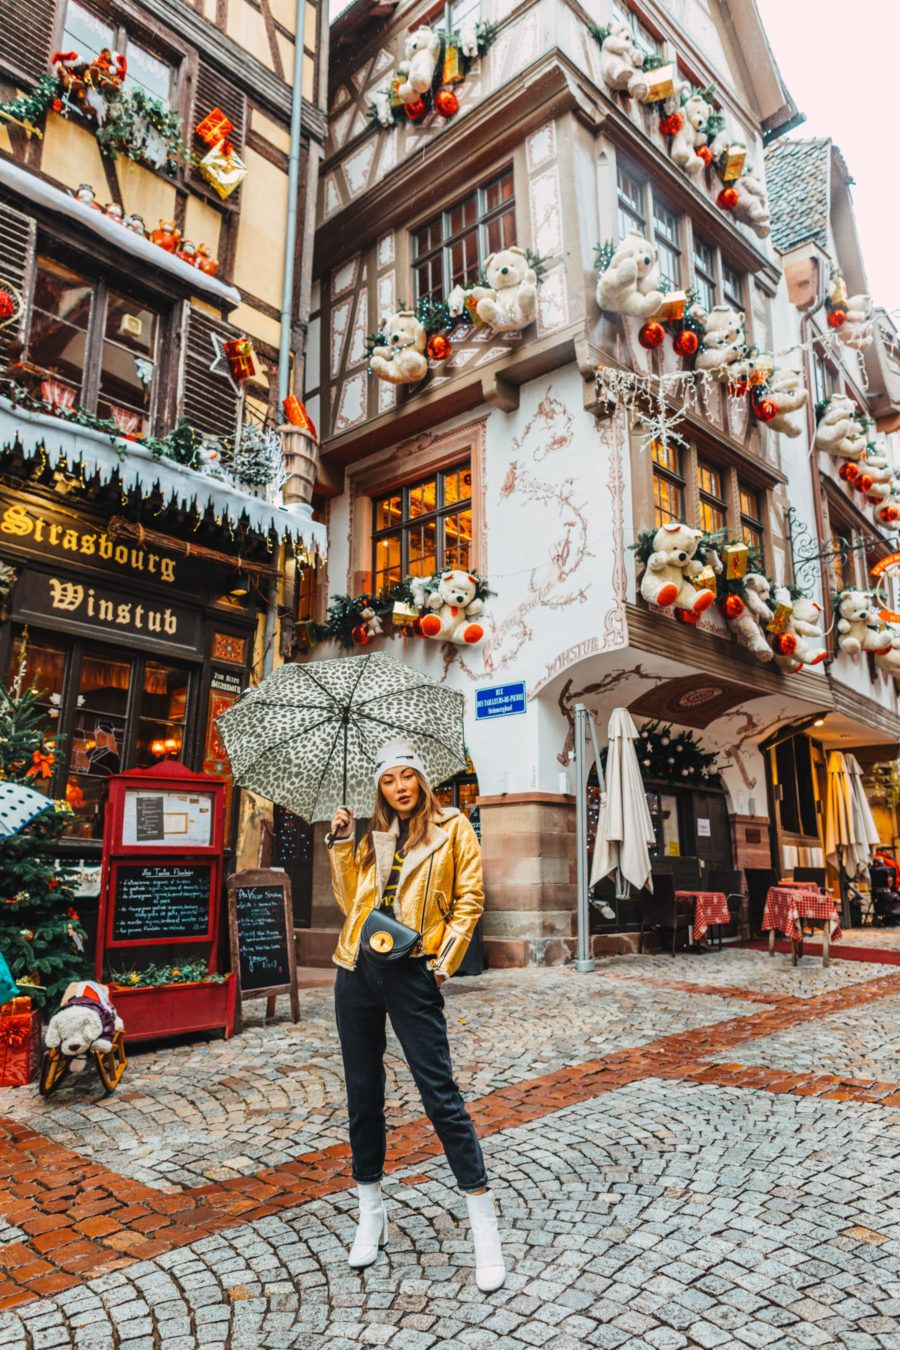 The Magic Of Christmas Truly Comes To Life In The Fairytale Town Of Colmar In France The Historic Setting And B Christmas In Europe Colmar Greece Travel Guide